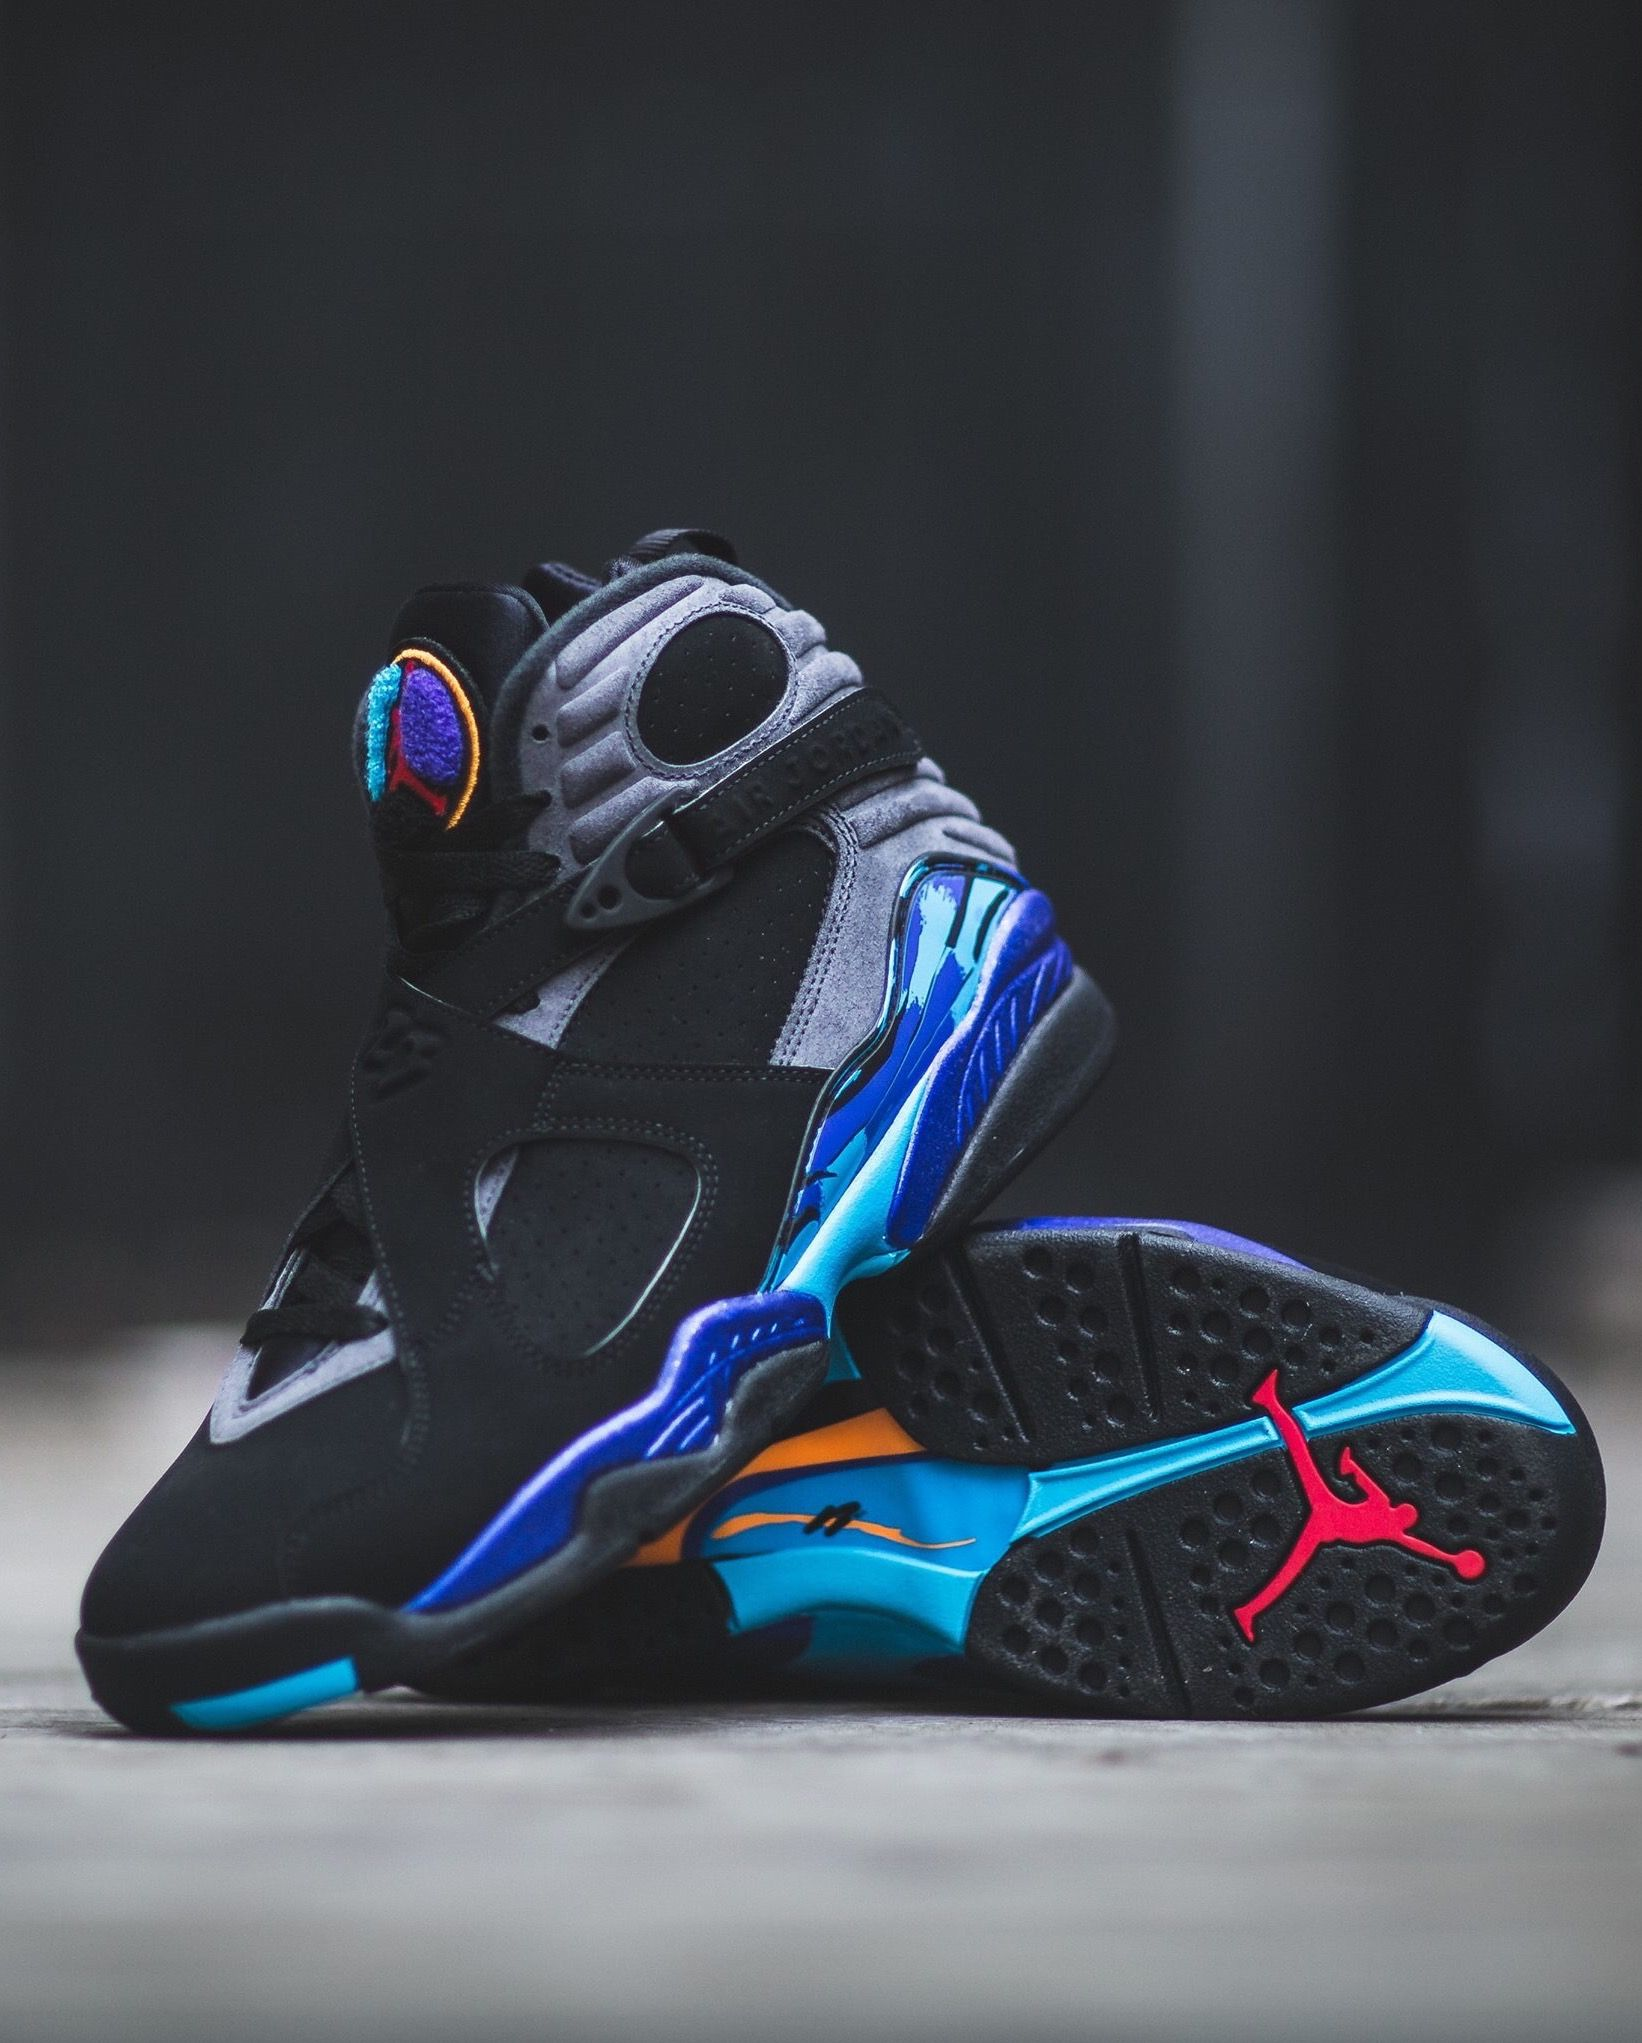 Air Jordan 8 Retro AQUA via Kicks daily